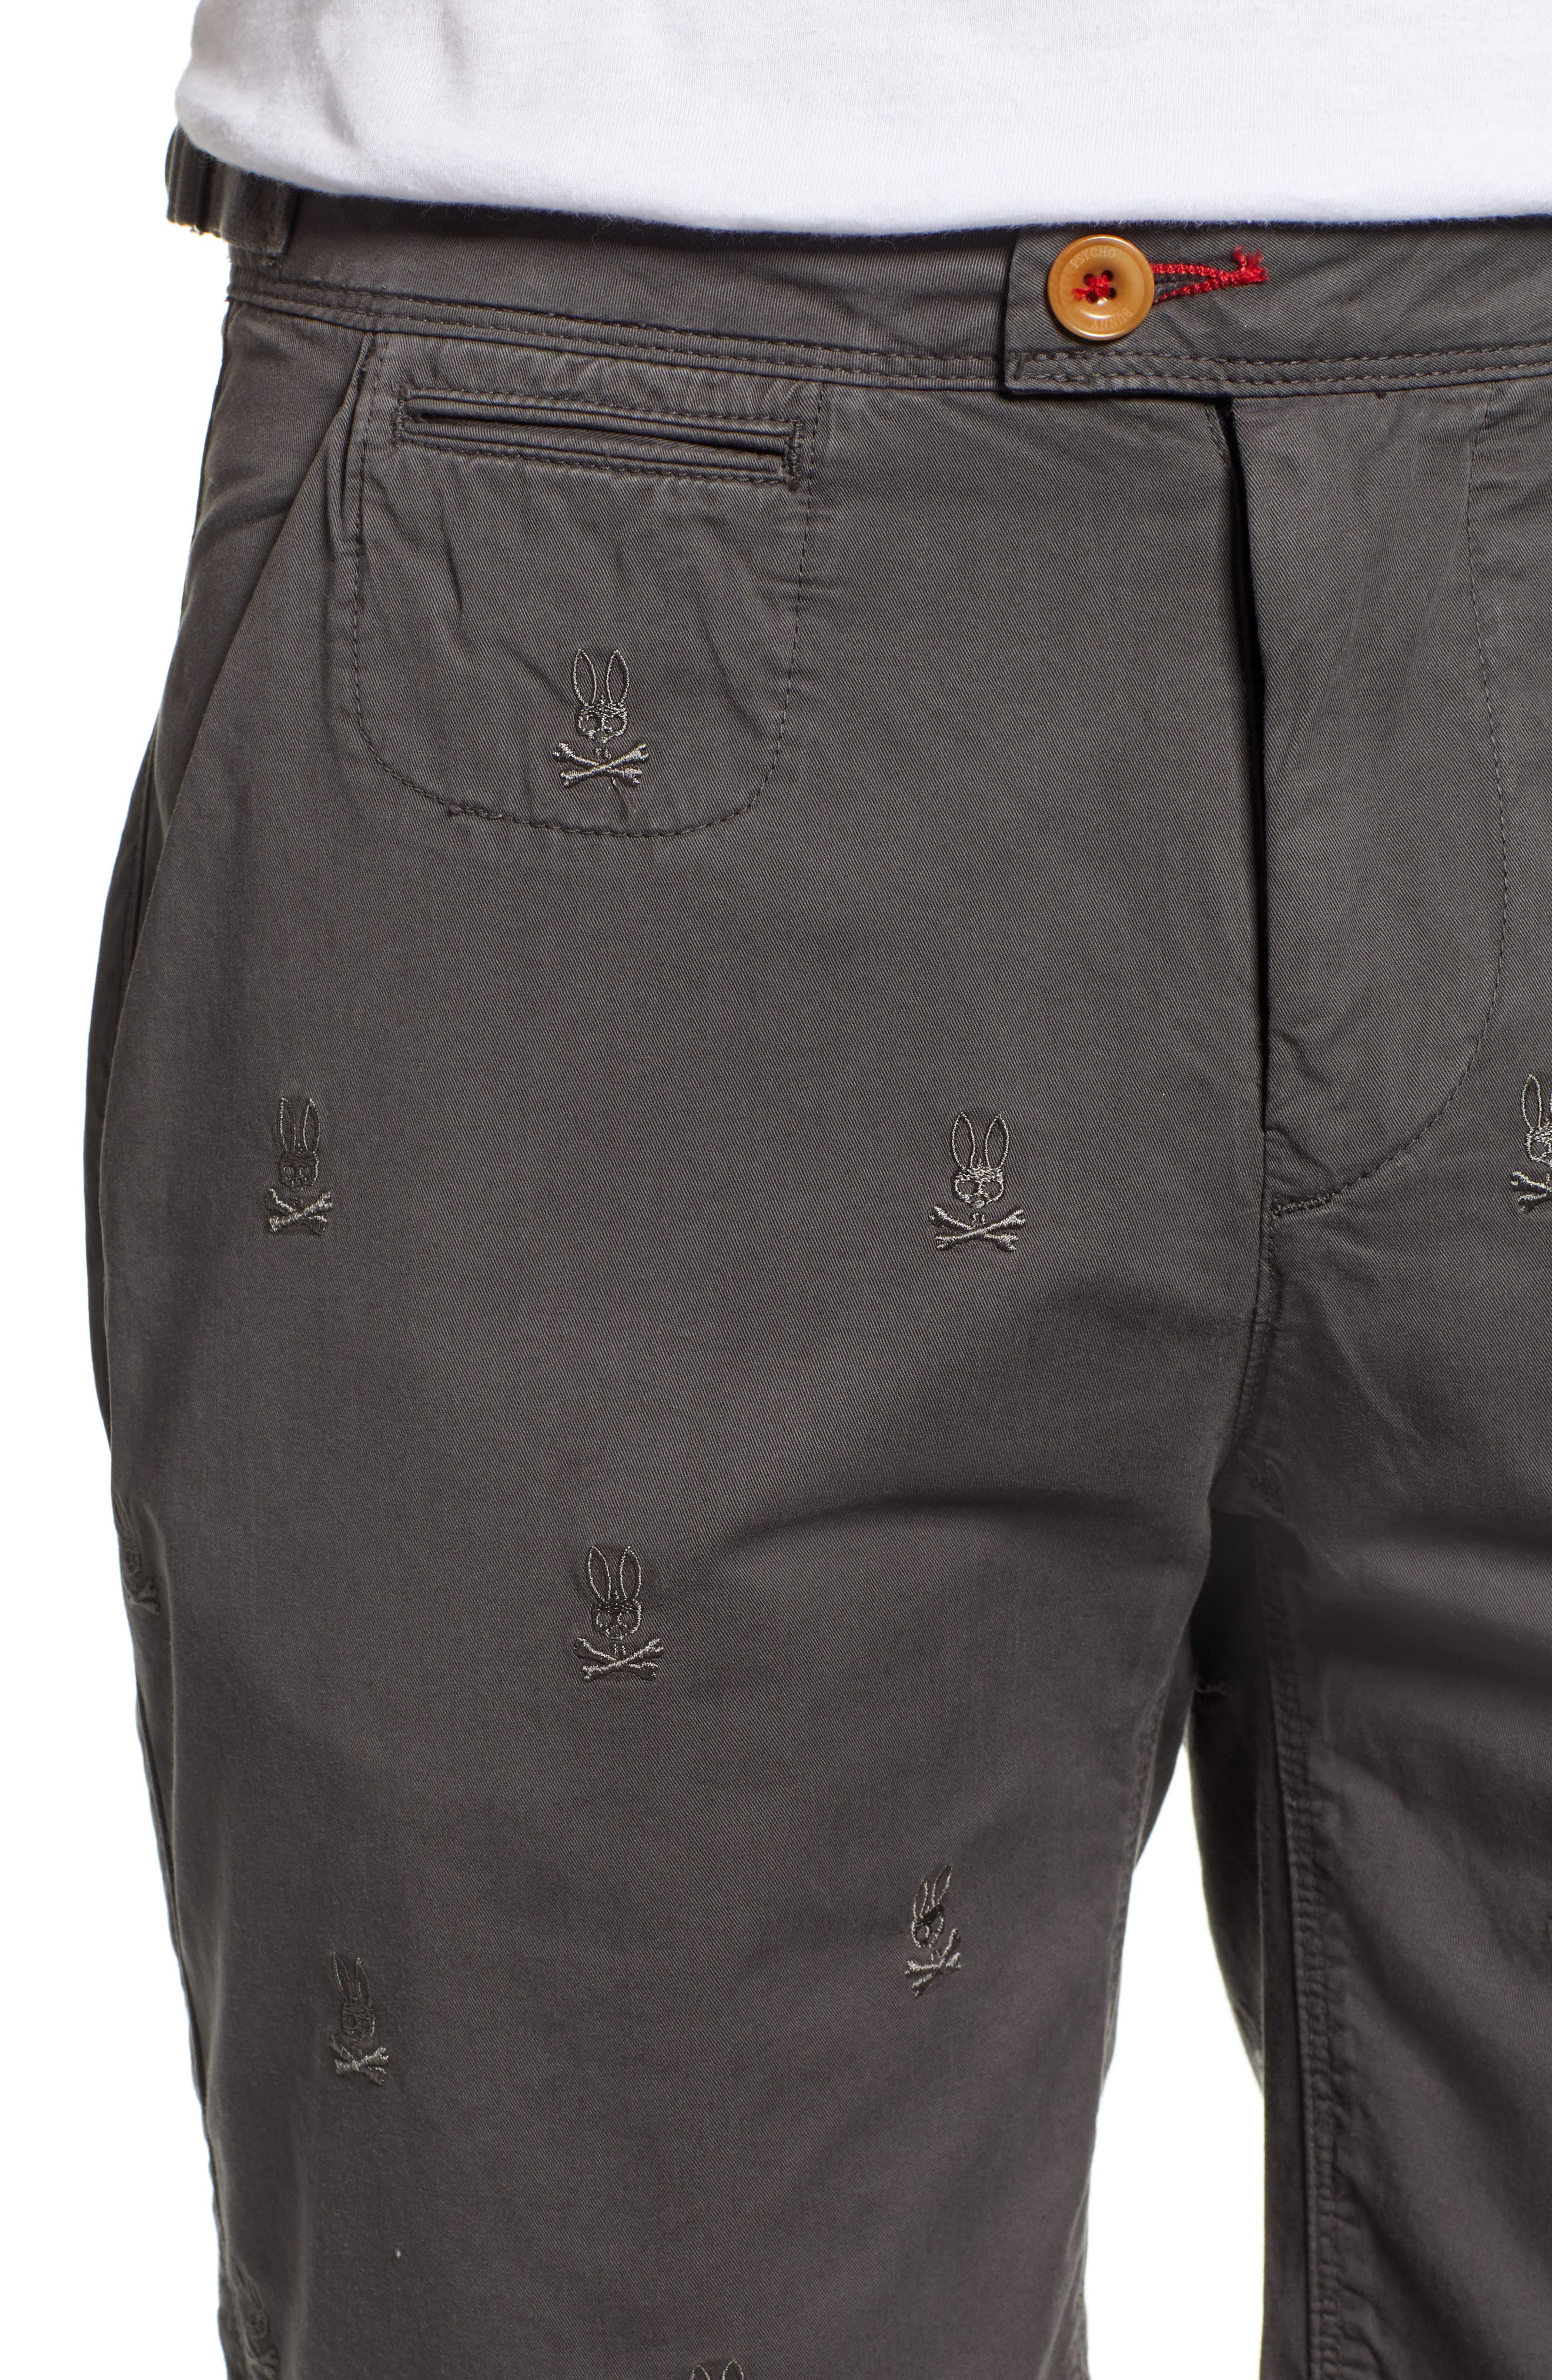 Psycho Bunny Embroidered Shorts,                             Alternate thumbnail 4, color,                             BLACK SAND